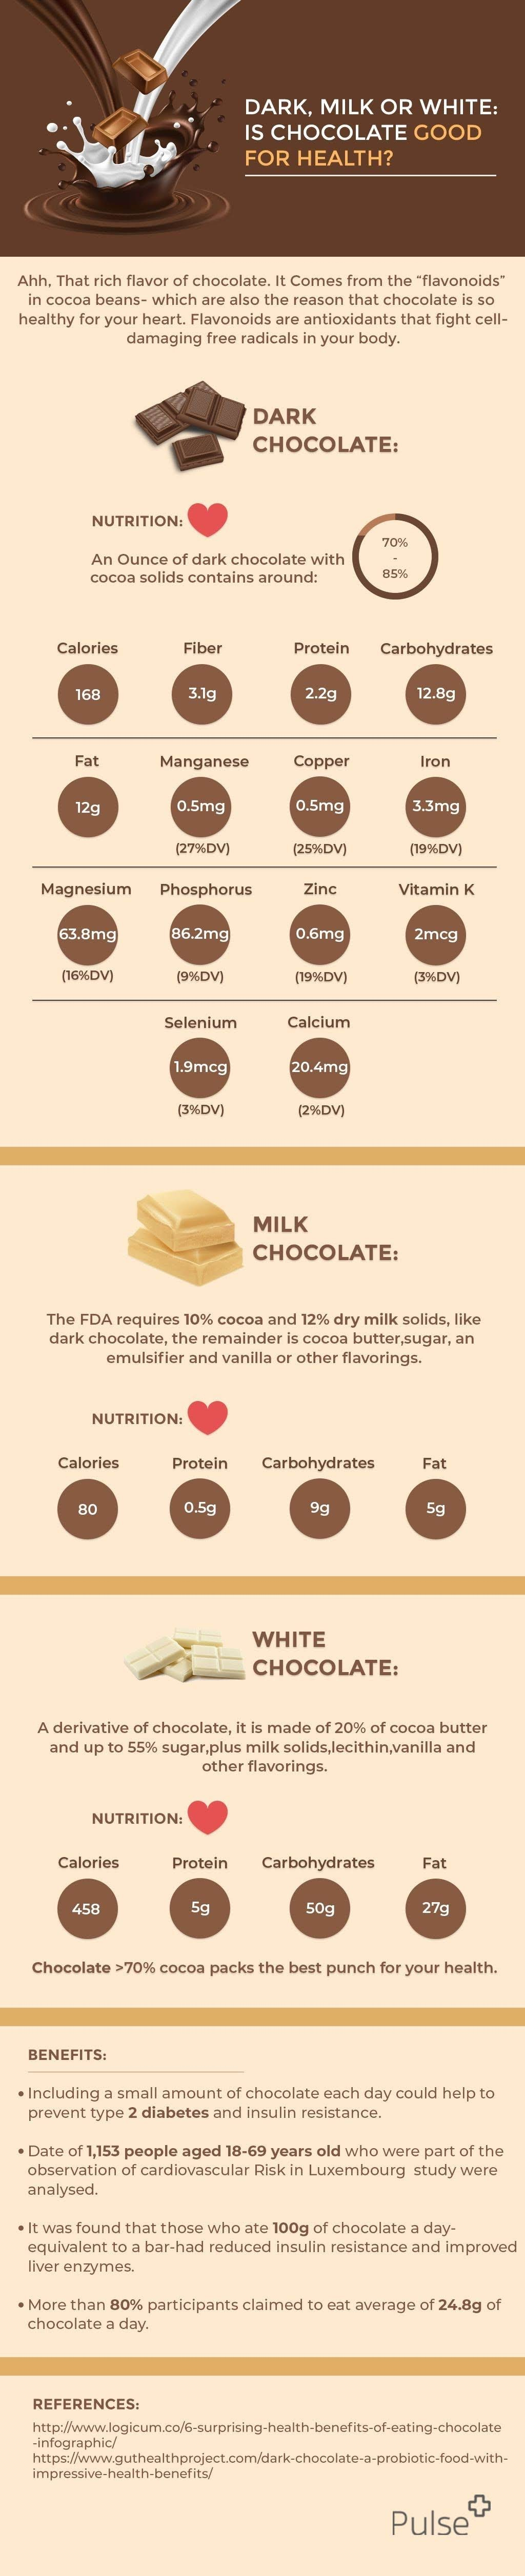 Dark, Milk or White: Is Chocolate good for health? #infographic